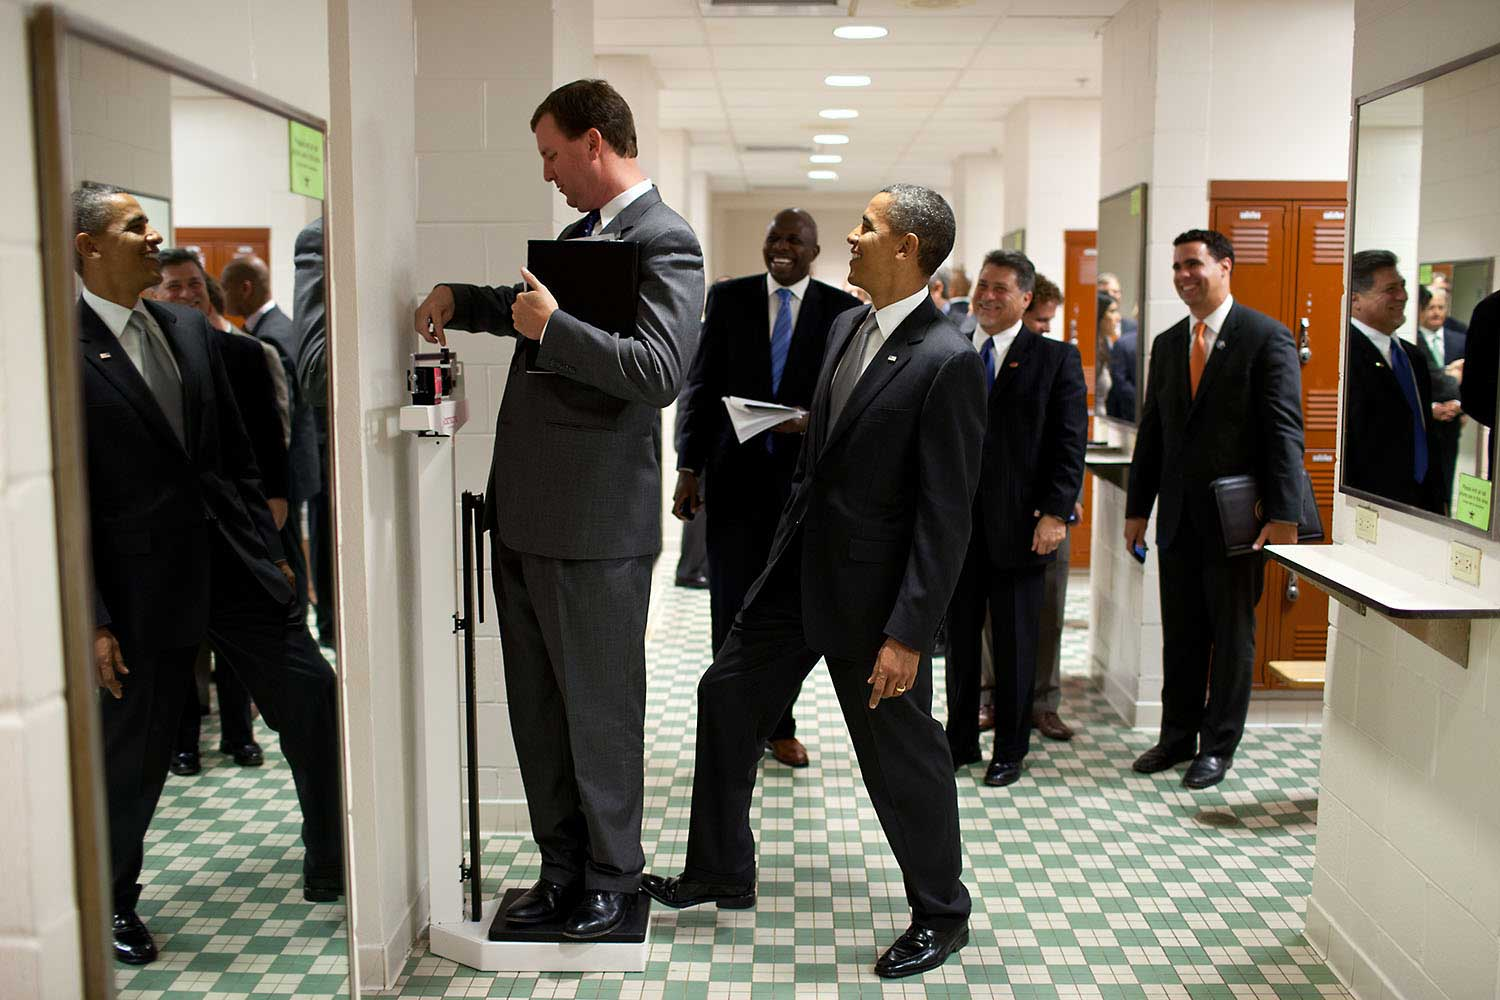 We were walking through a locker room at the University of Texas on August 9, 2010, when White House Trip Director Marvin Nicholson stopped to weigh himself on a scale. Unbeknownst to him, the President was stepping on the back of the scale, as Marvin continued to slide the scale lever. Everyone but Marvin was in on the joke.